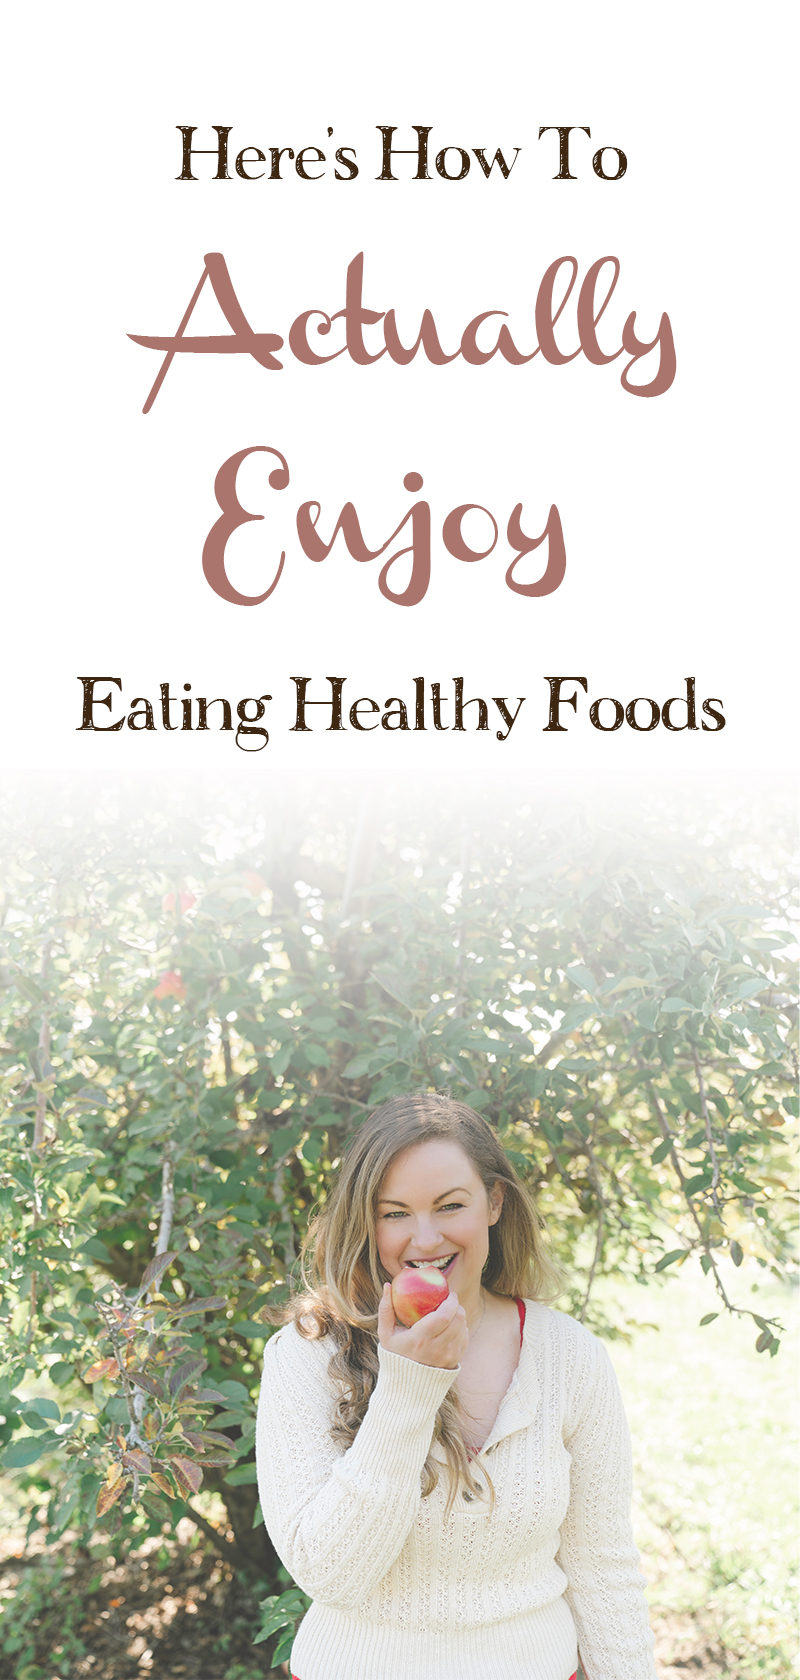 How-To-Actually-Enjoy-Eating-Healthy